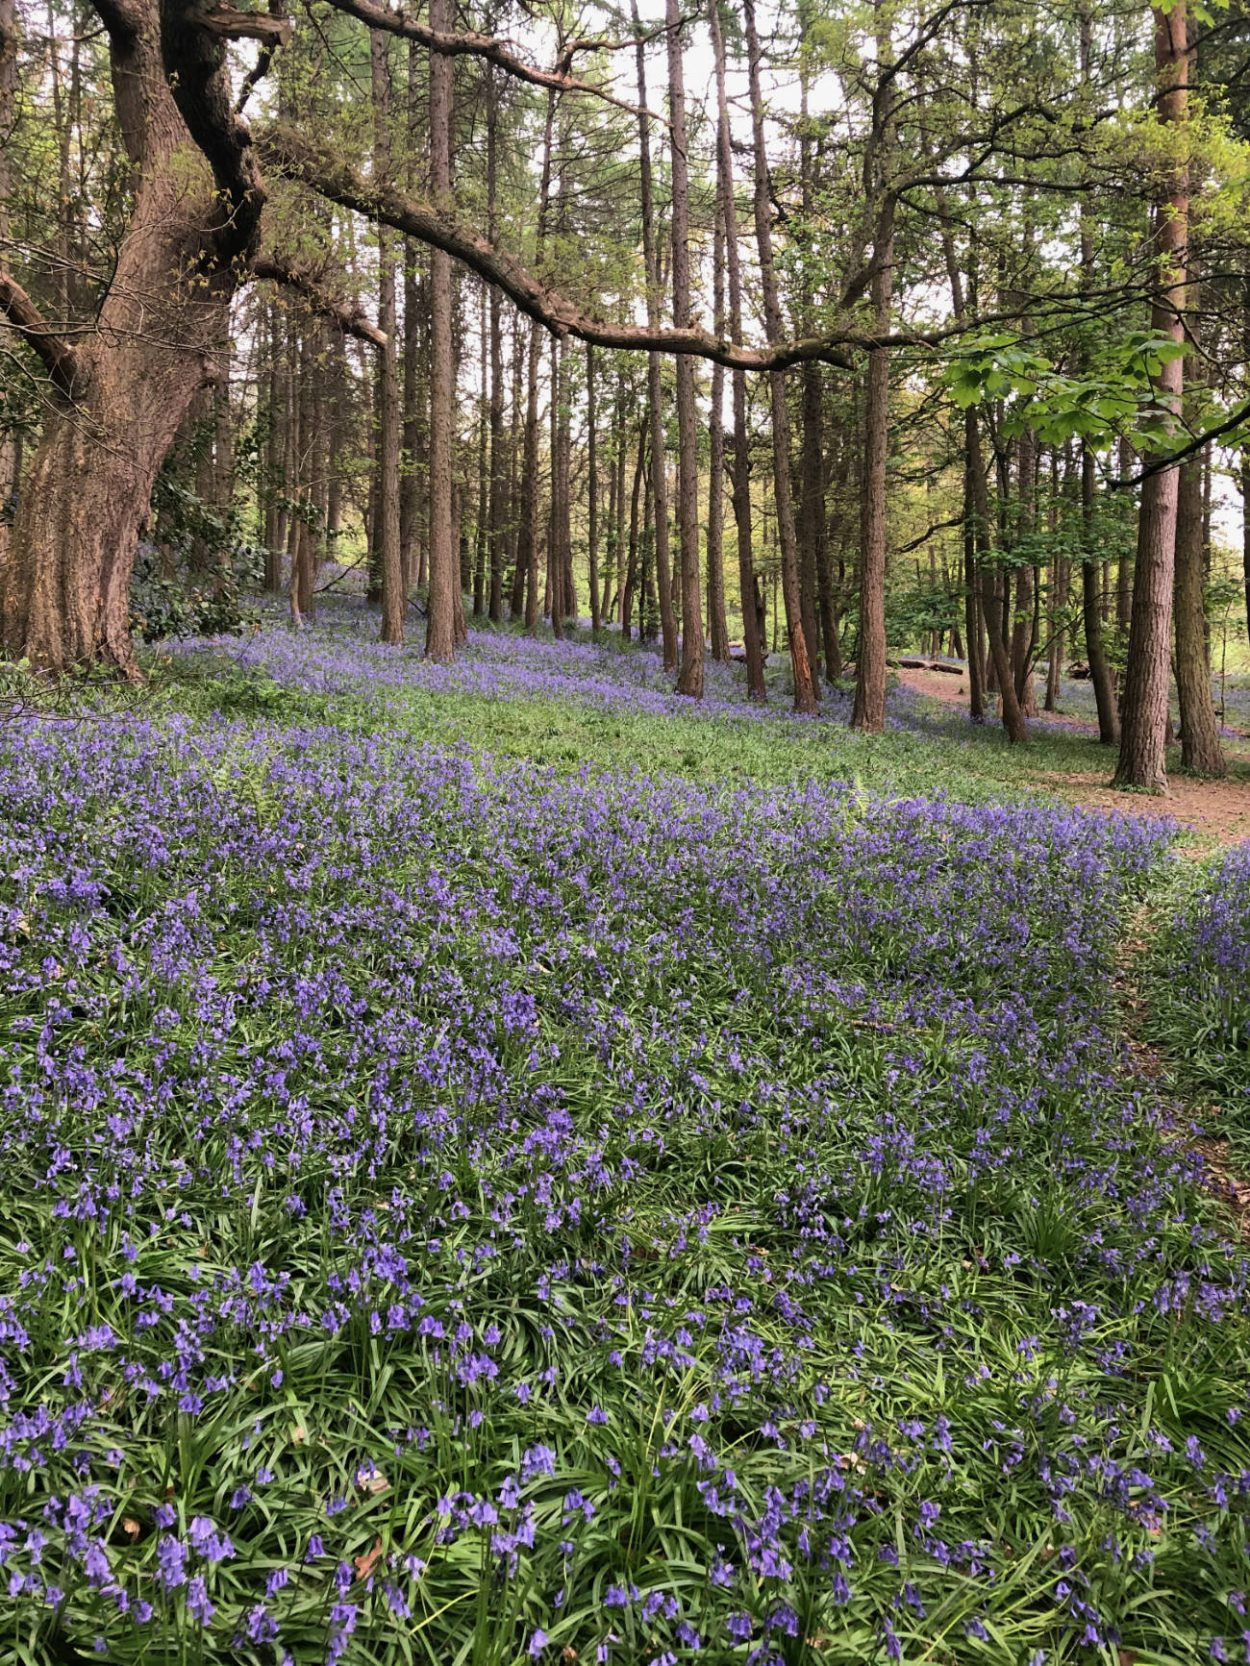 Bluebells covering the forest floor in Middleton Woods